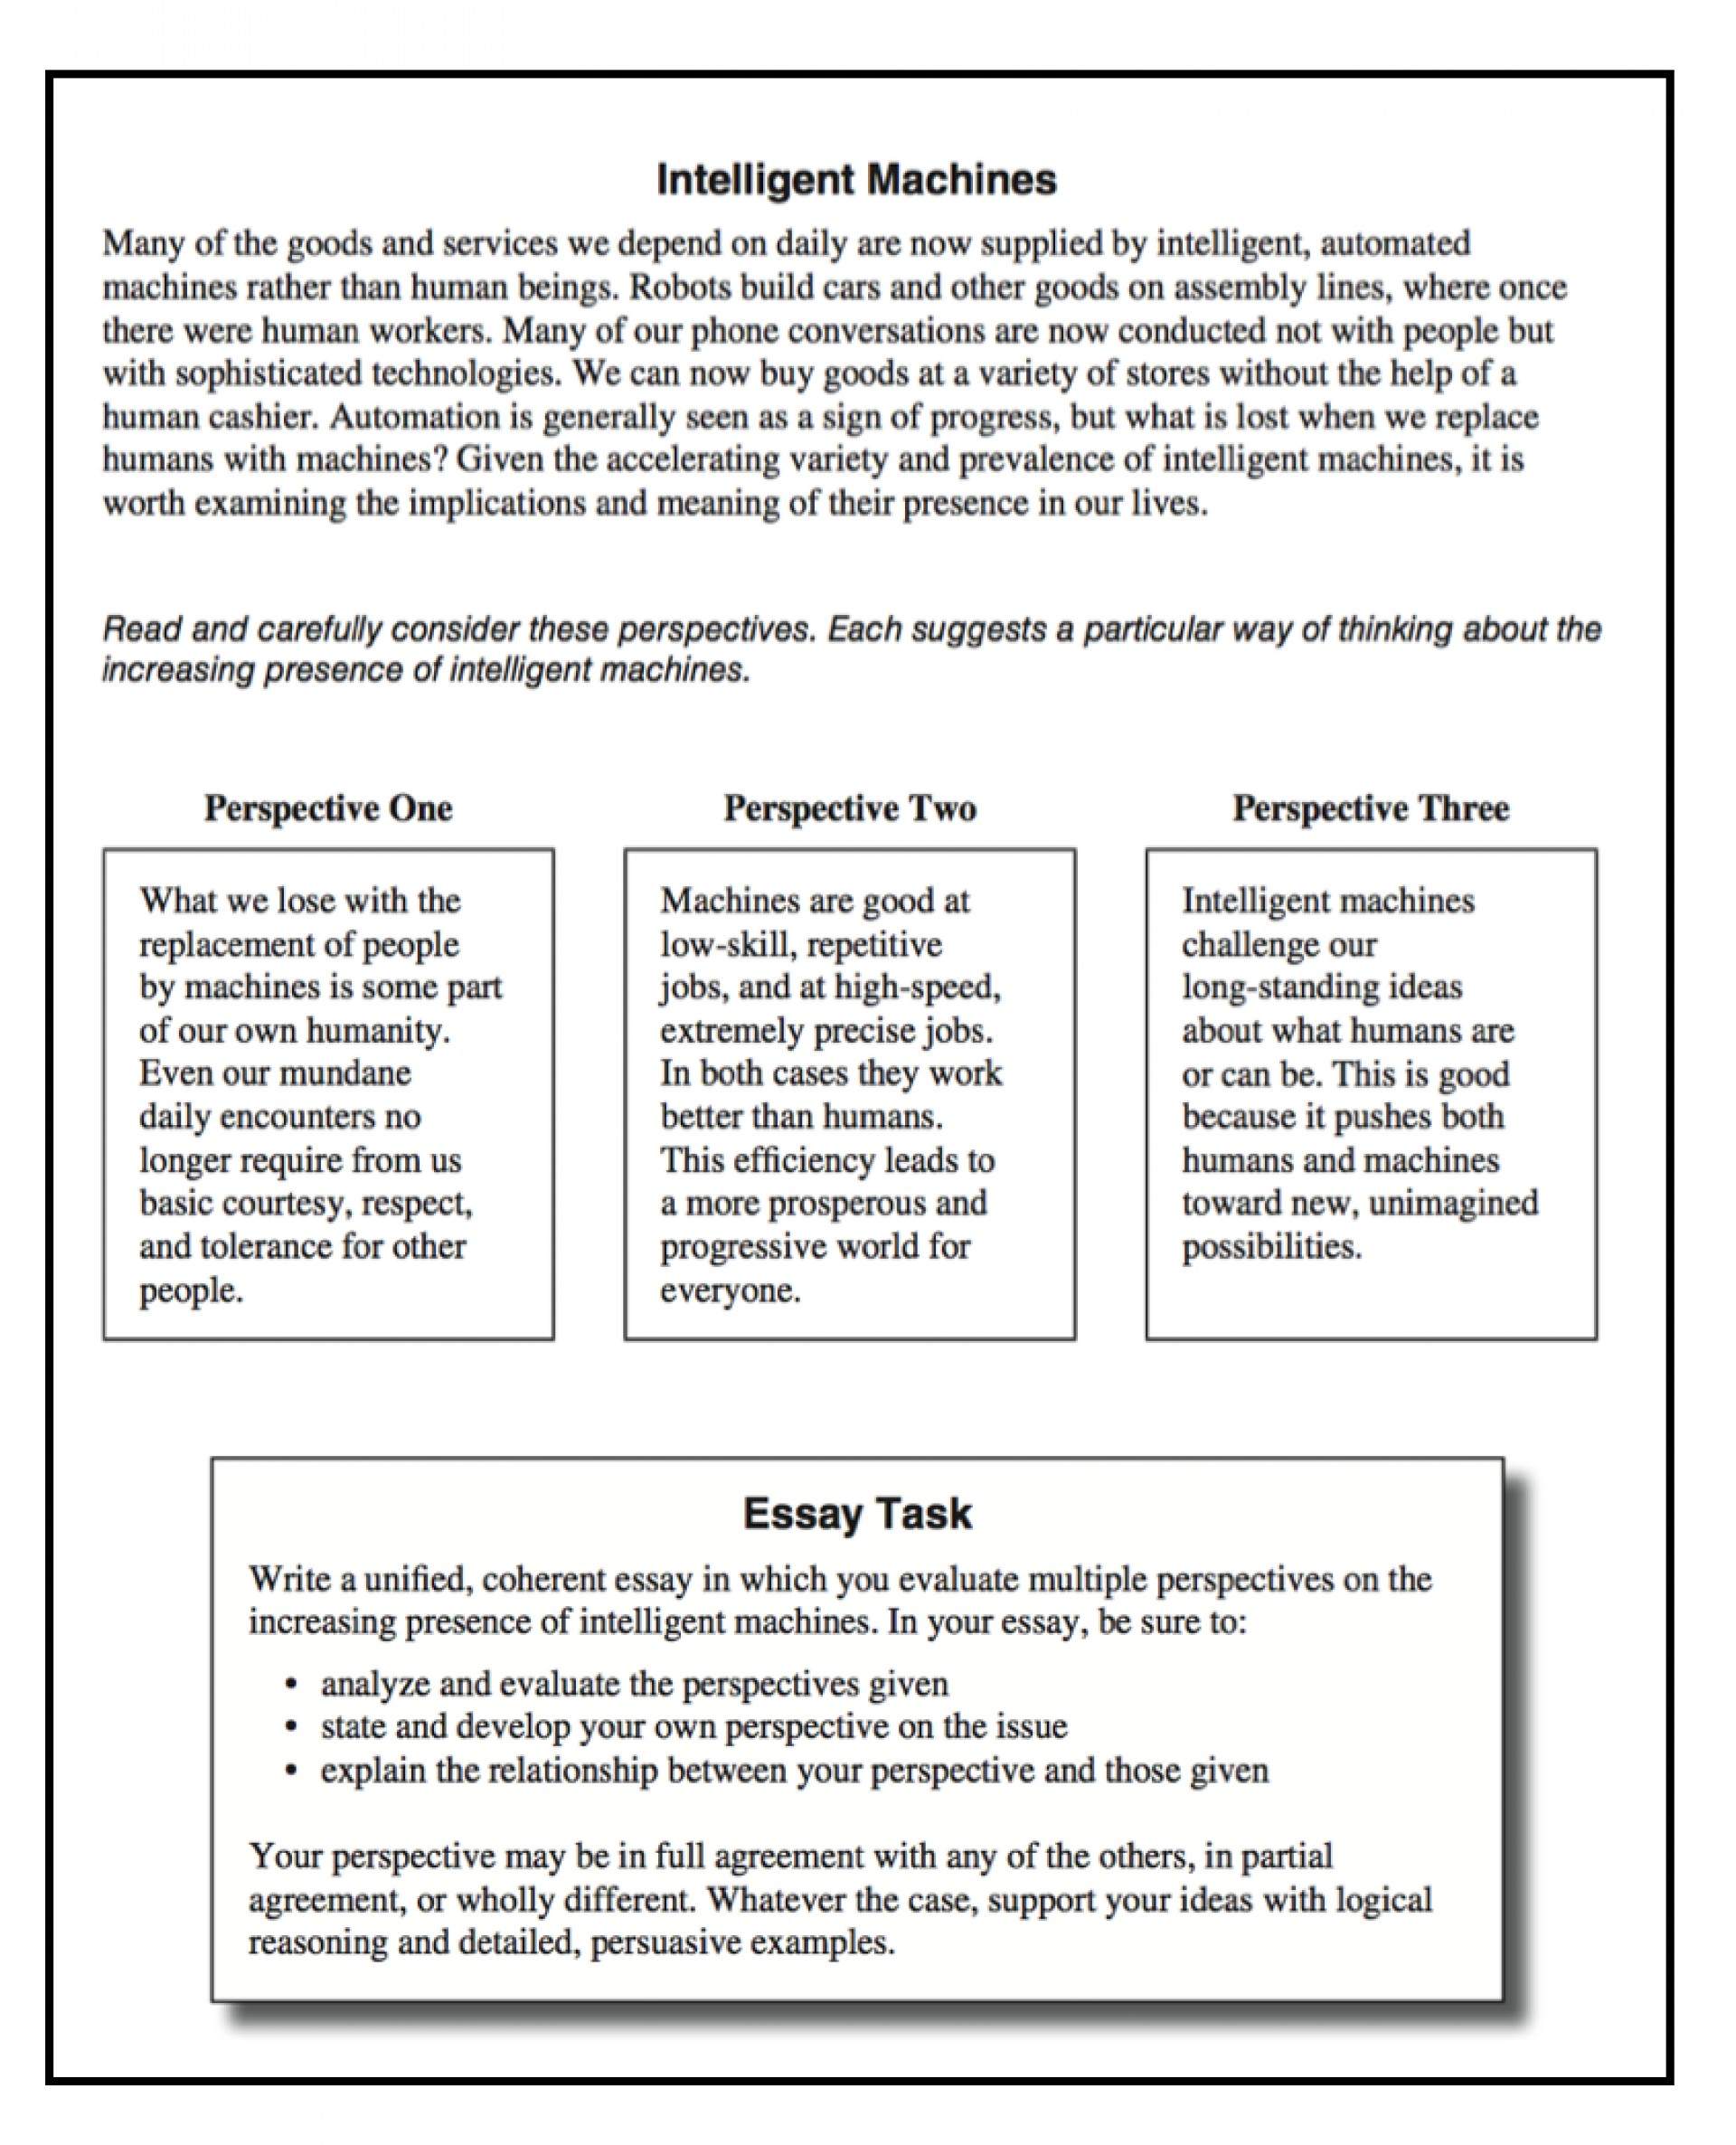 019 Screen Shot At Sat Essay Format Breathtaking New Template Pdf 2 Paper Old 1920